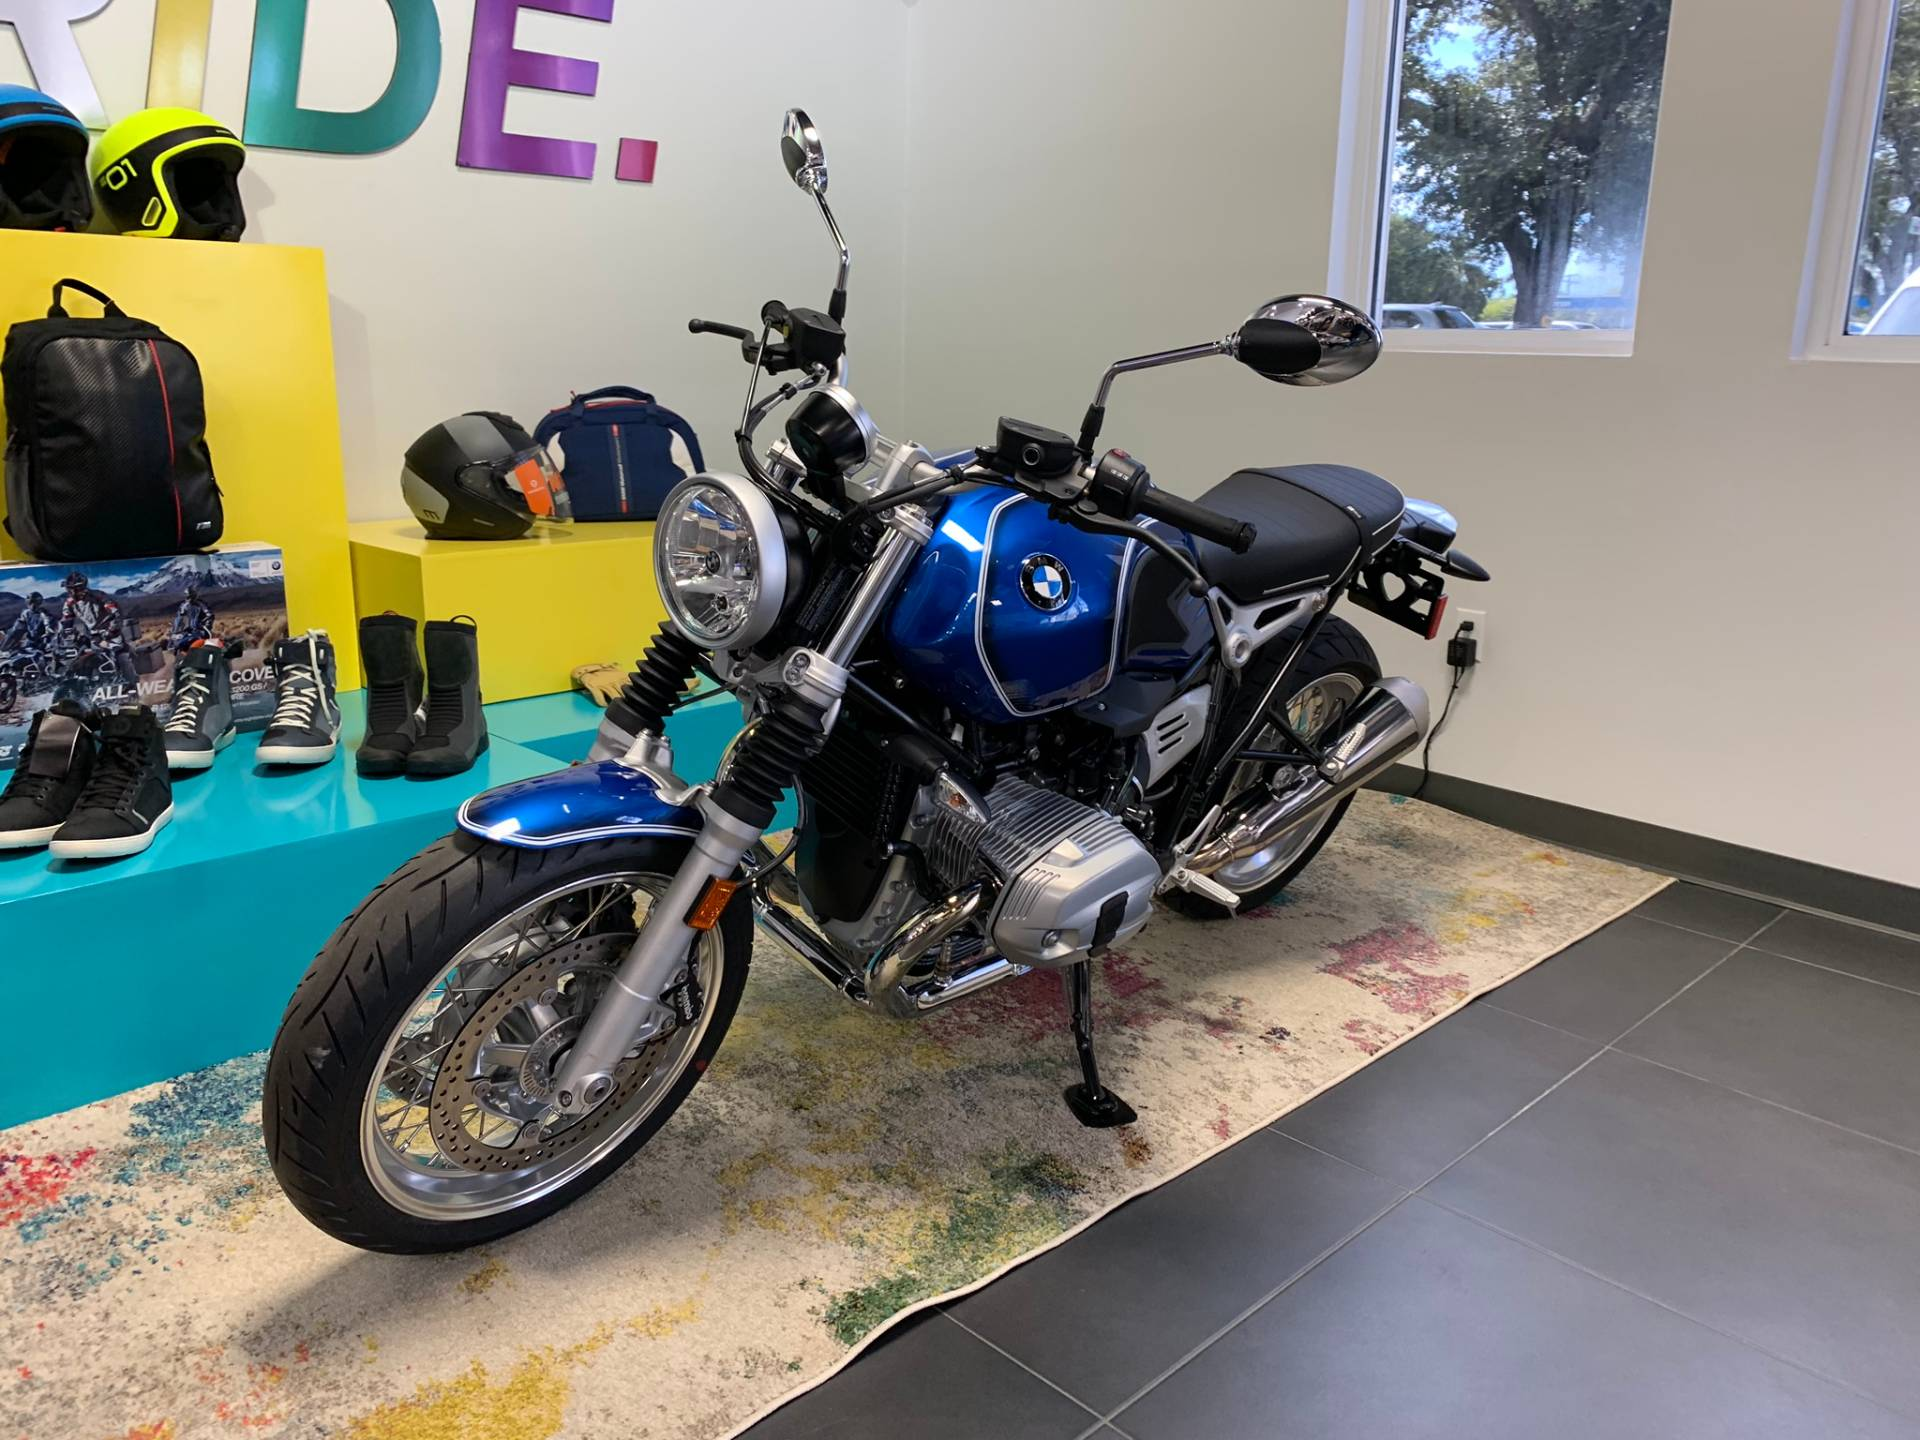 New 2020 2019 BMW R NineT for sale, BMW for sale, BMW Motorcycle Café Racer, new BMW Caffe, Cafe Racer, BMW. BMW Motorcycles of Miami, Motorcycles of Miami, Motorcycles Miami, New Motorcycles, Used Motorcycles, pre-owned. #BMWMotorcyclesOfMiami #MotorcyclesOfMiami. - Photo 37